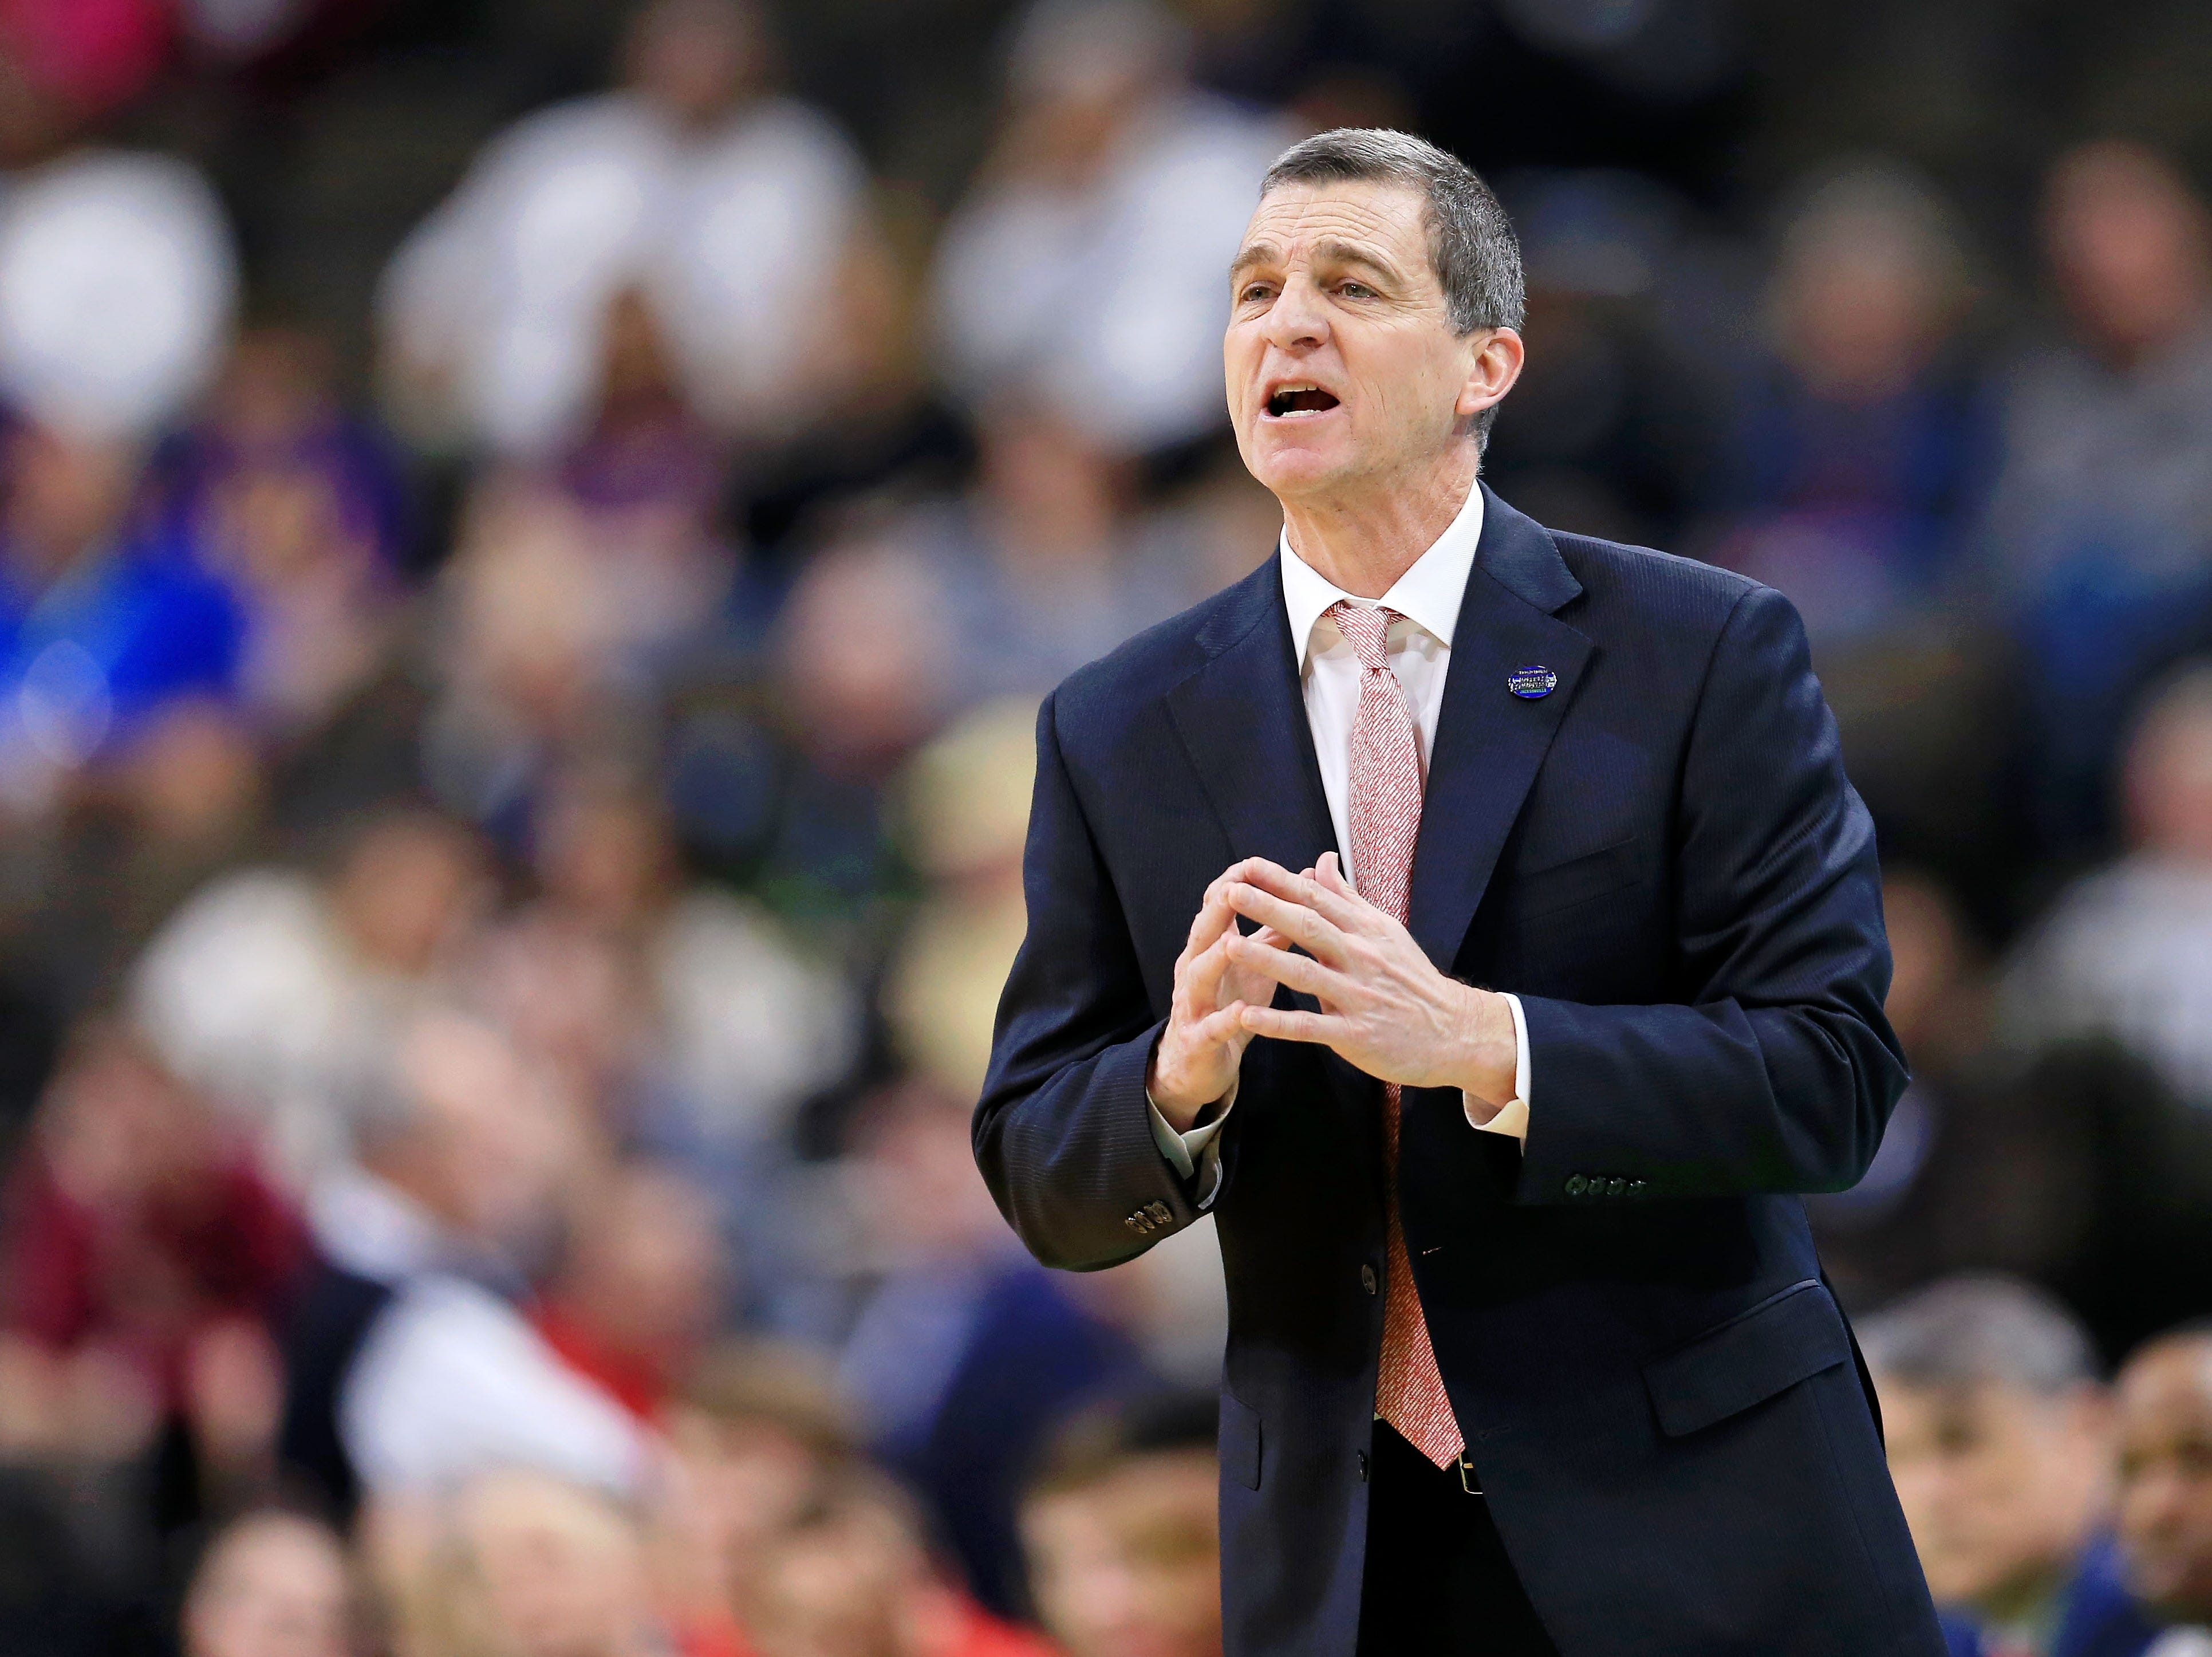 Mar 23, 2019; Jacksonville, FL, USA; Maryland Terrapins head coach Mark Turgeon instructs his team during the first half of their game against the LSU Tigers in the second round of the 2019 NCAA Tournament at Jacksonville Veterans Memorial Arena. Mandatory Credit: Matt Stamey-USA TODAY Sports